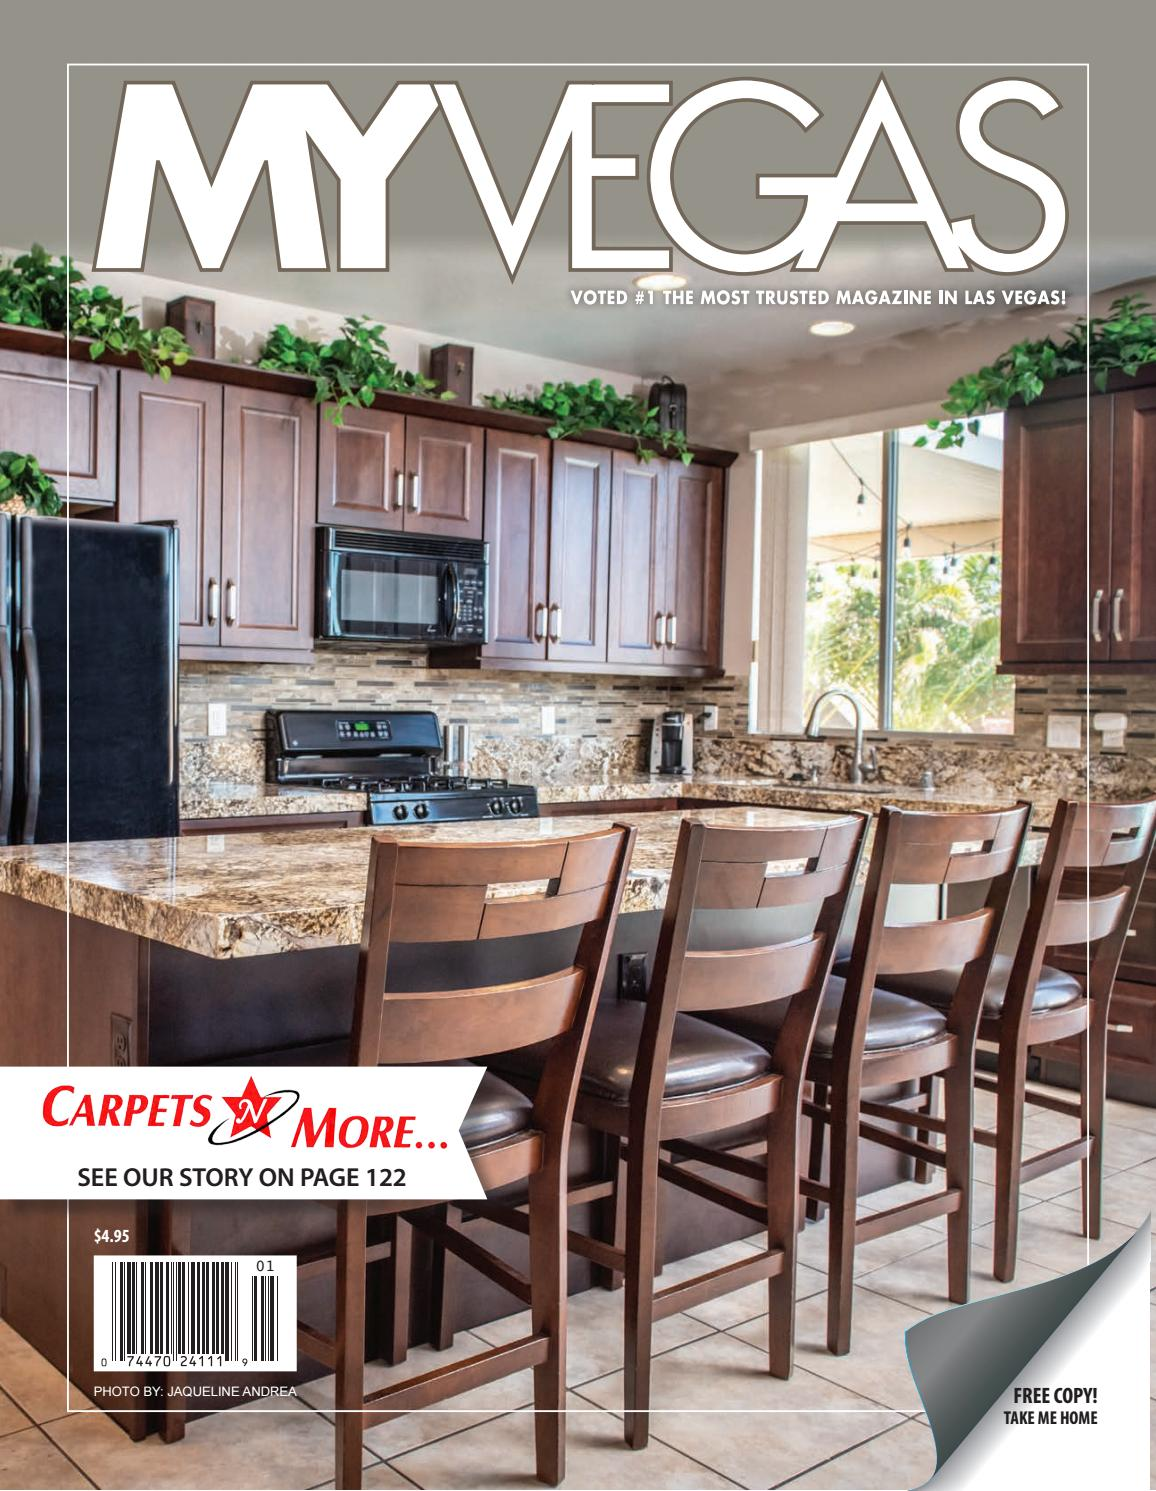 Cucina Amorosa Warehouse Import Winter 2018 2019 Carpets N More By Myvegas Mag Issuu